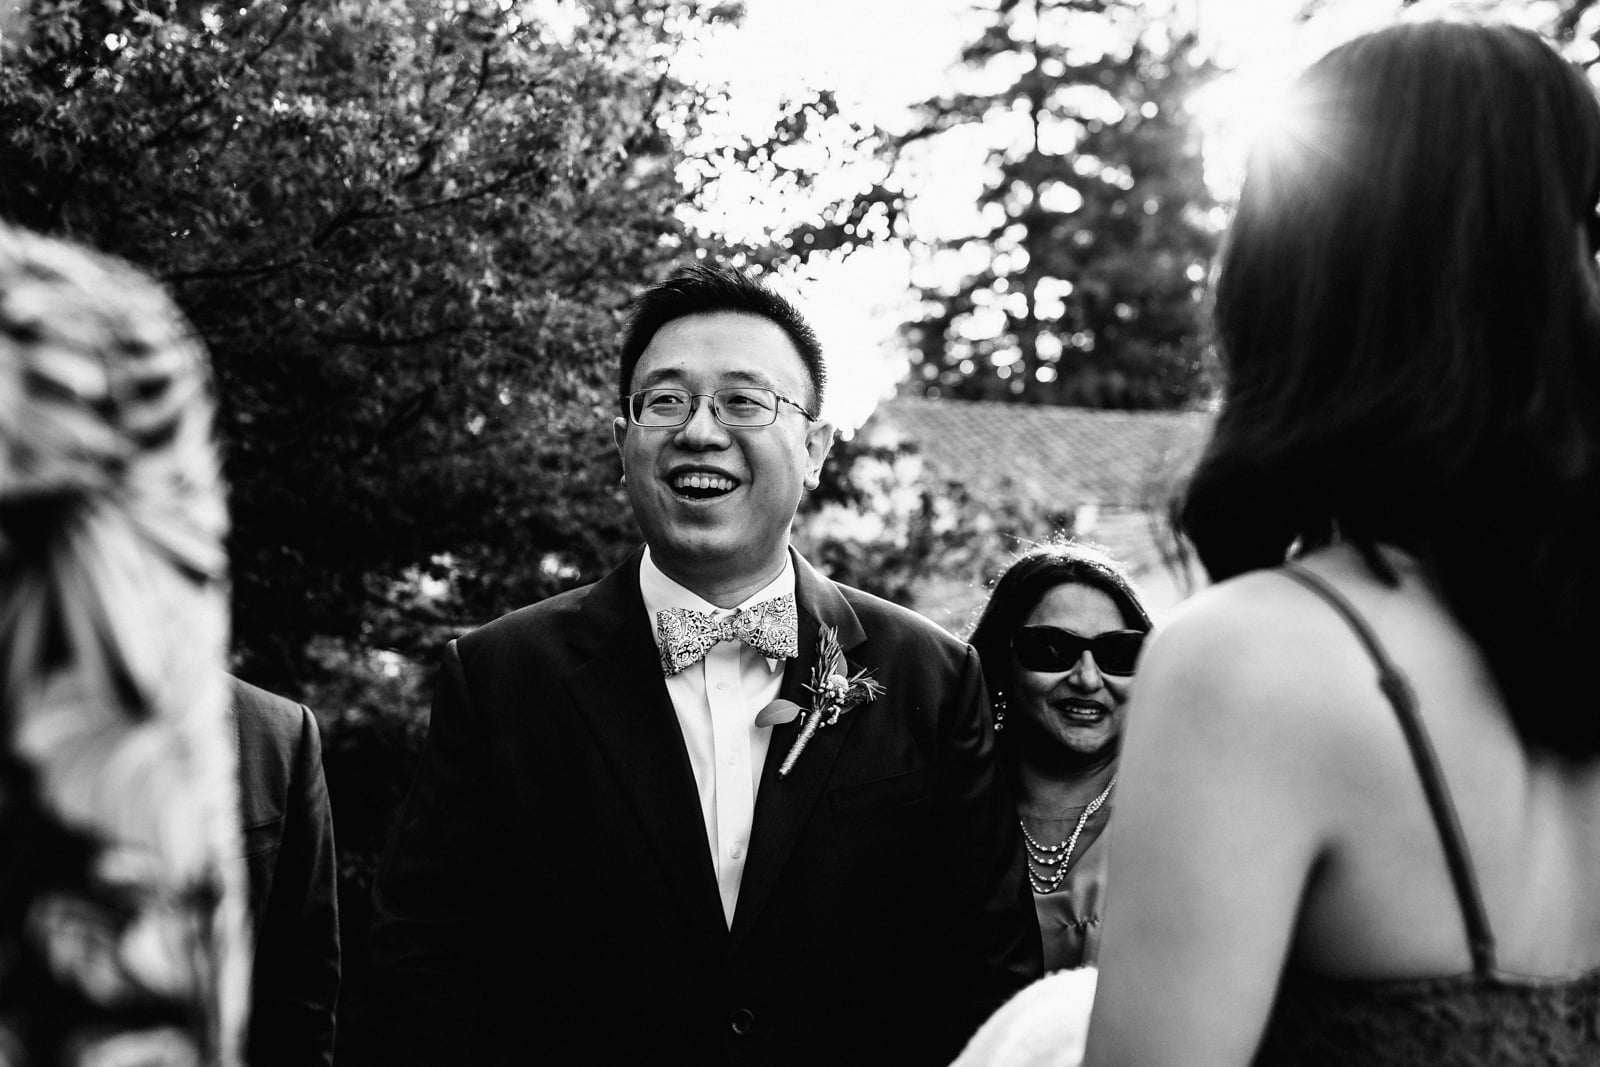 Groom smiling with guests